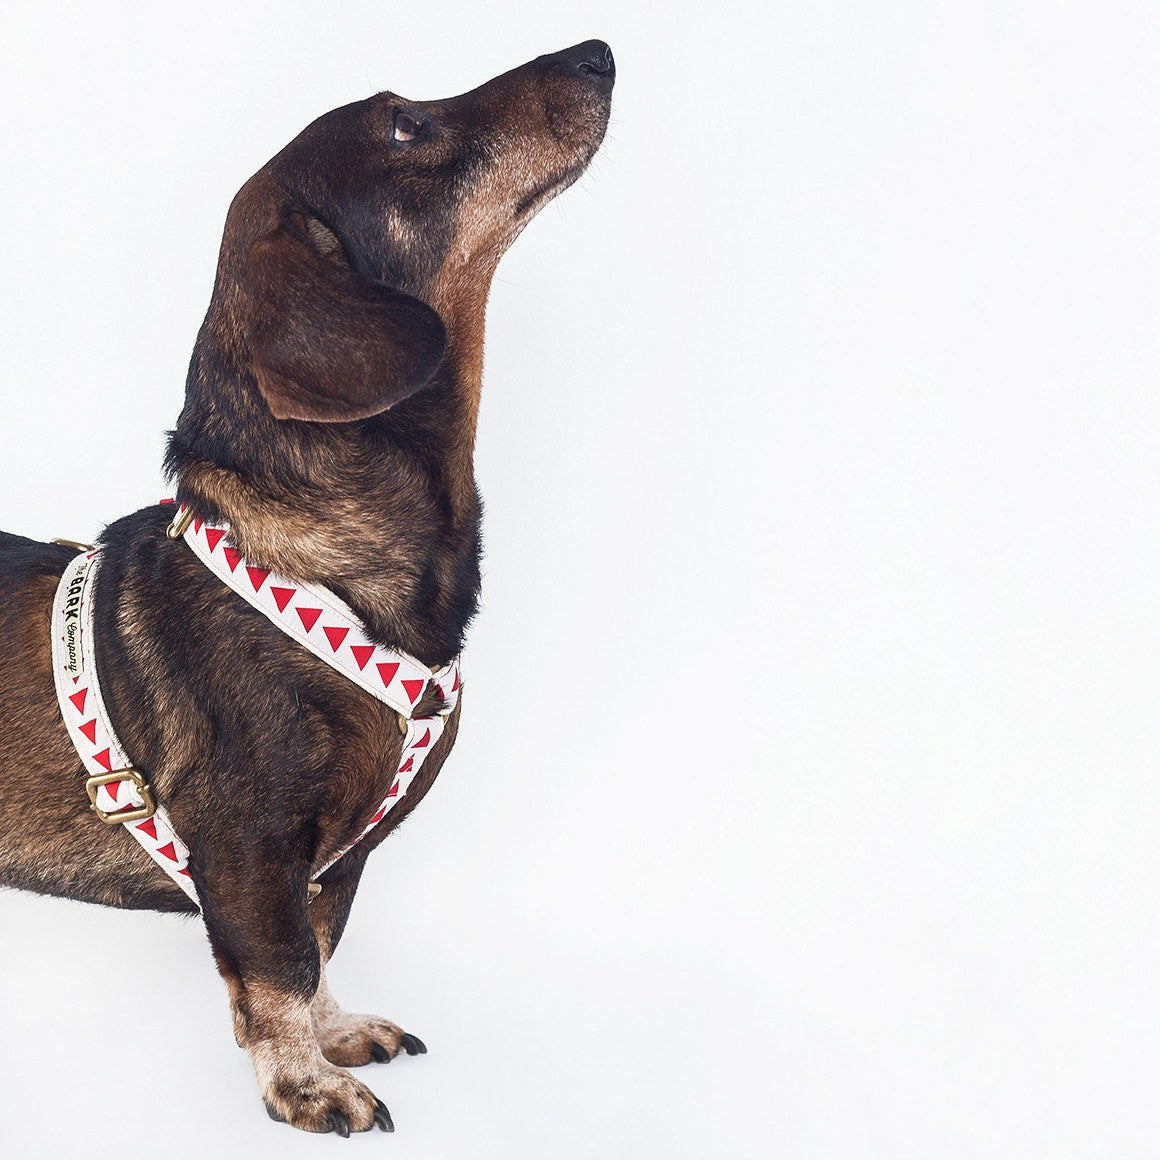 Wovoka dog harness - The Bark Co. Handmade dog Harness